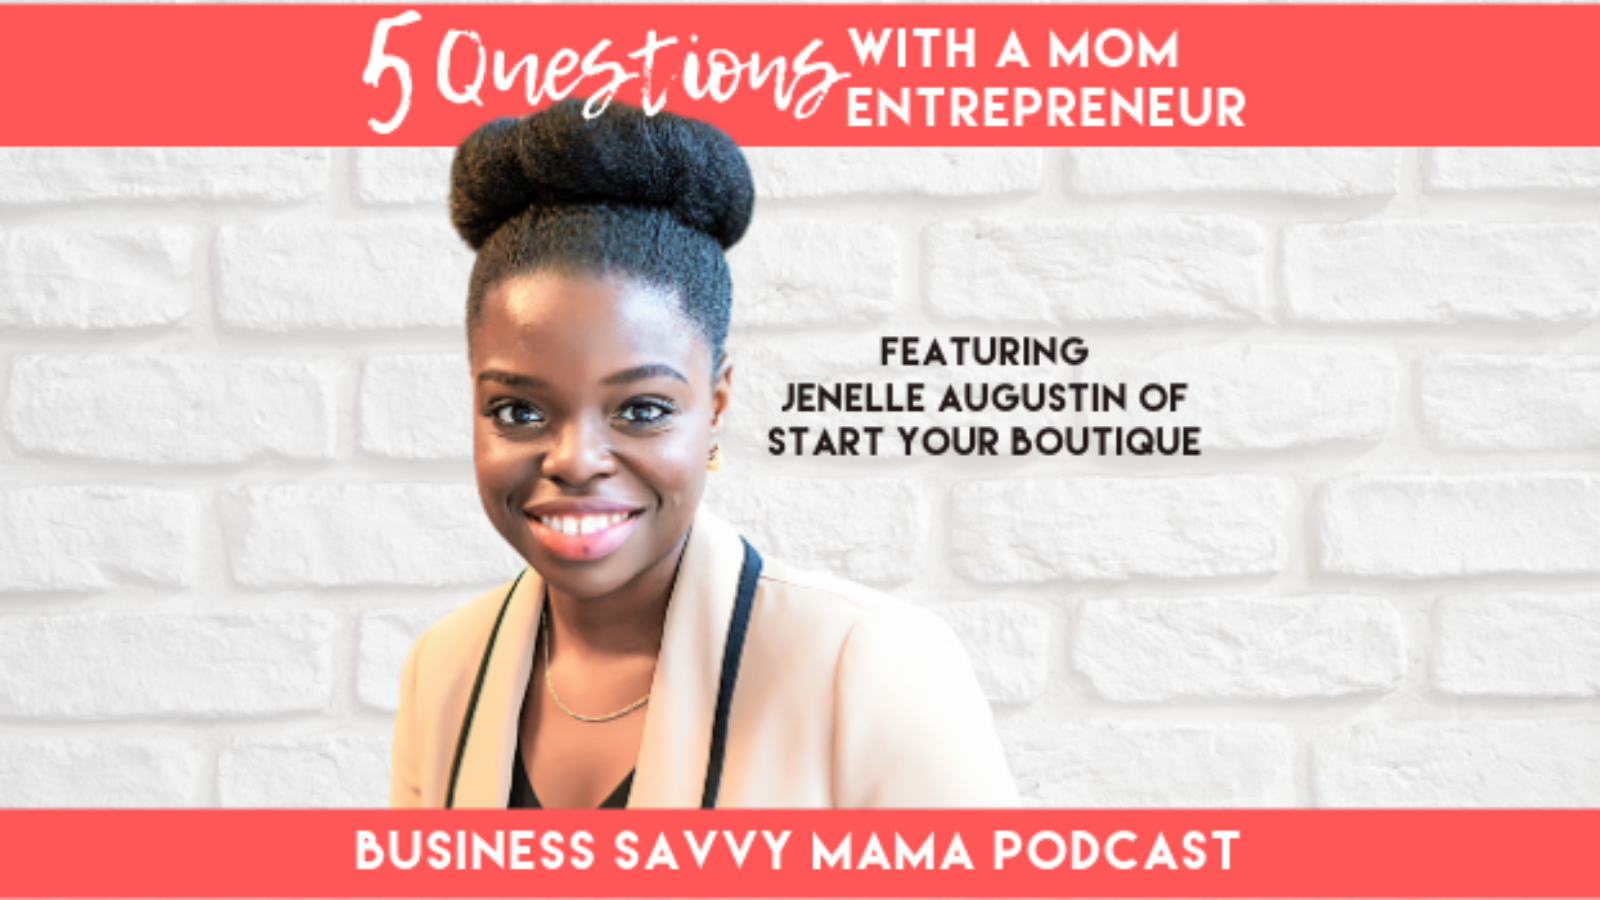 Jenelle Augustin - 5 Questions with a Mom Entrepreneur - Business Savvy Mama Podcast